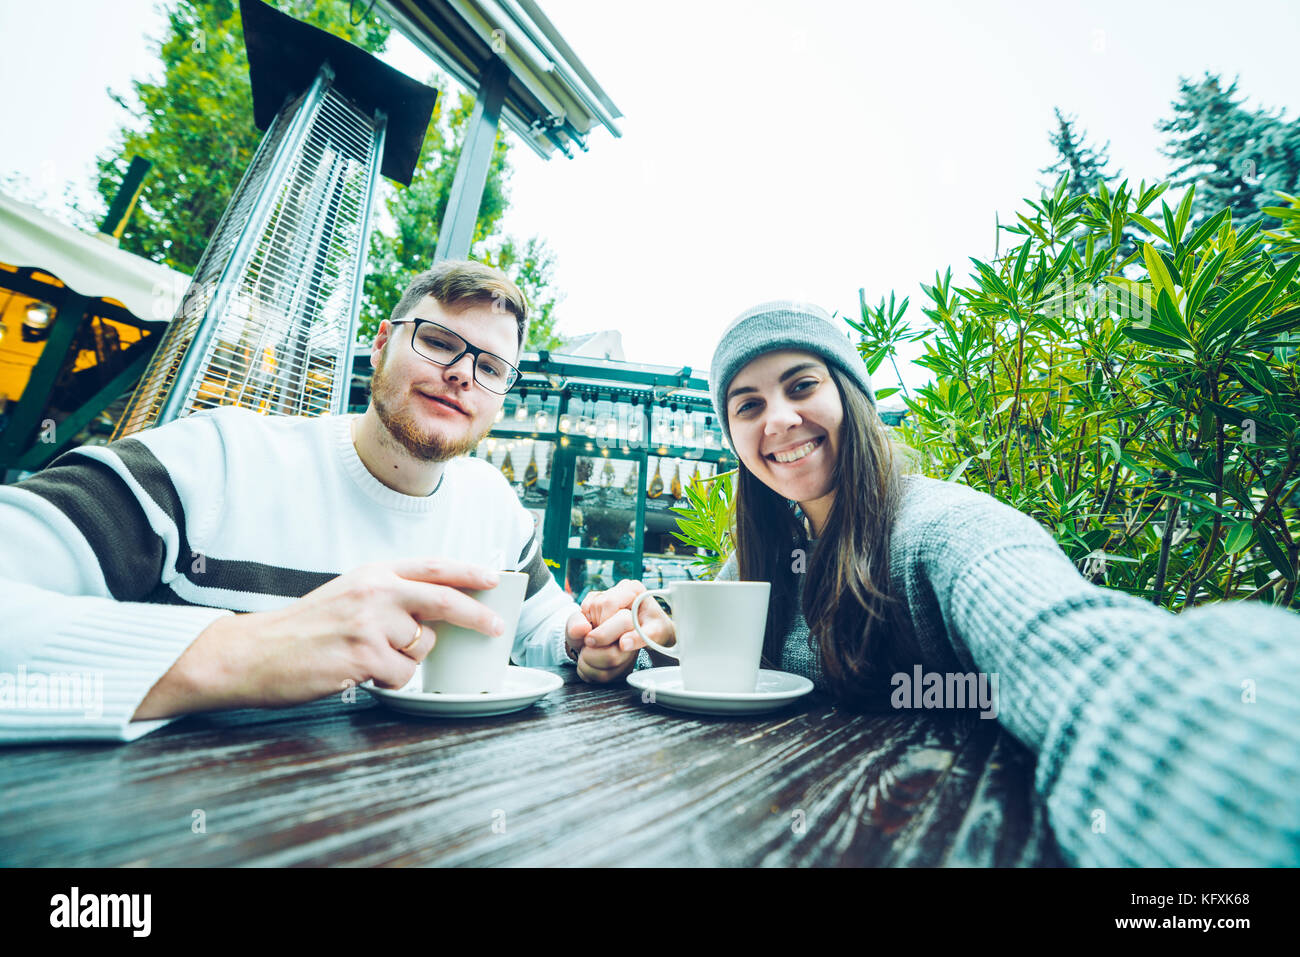 Couple eating in cafe à l'extérieur Photo Stock